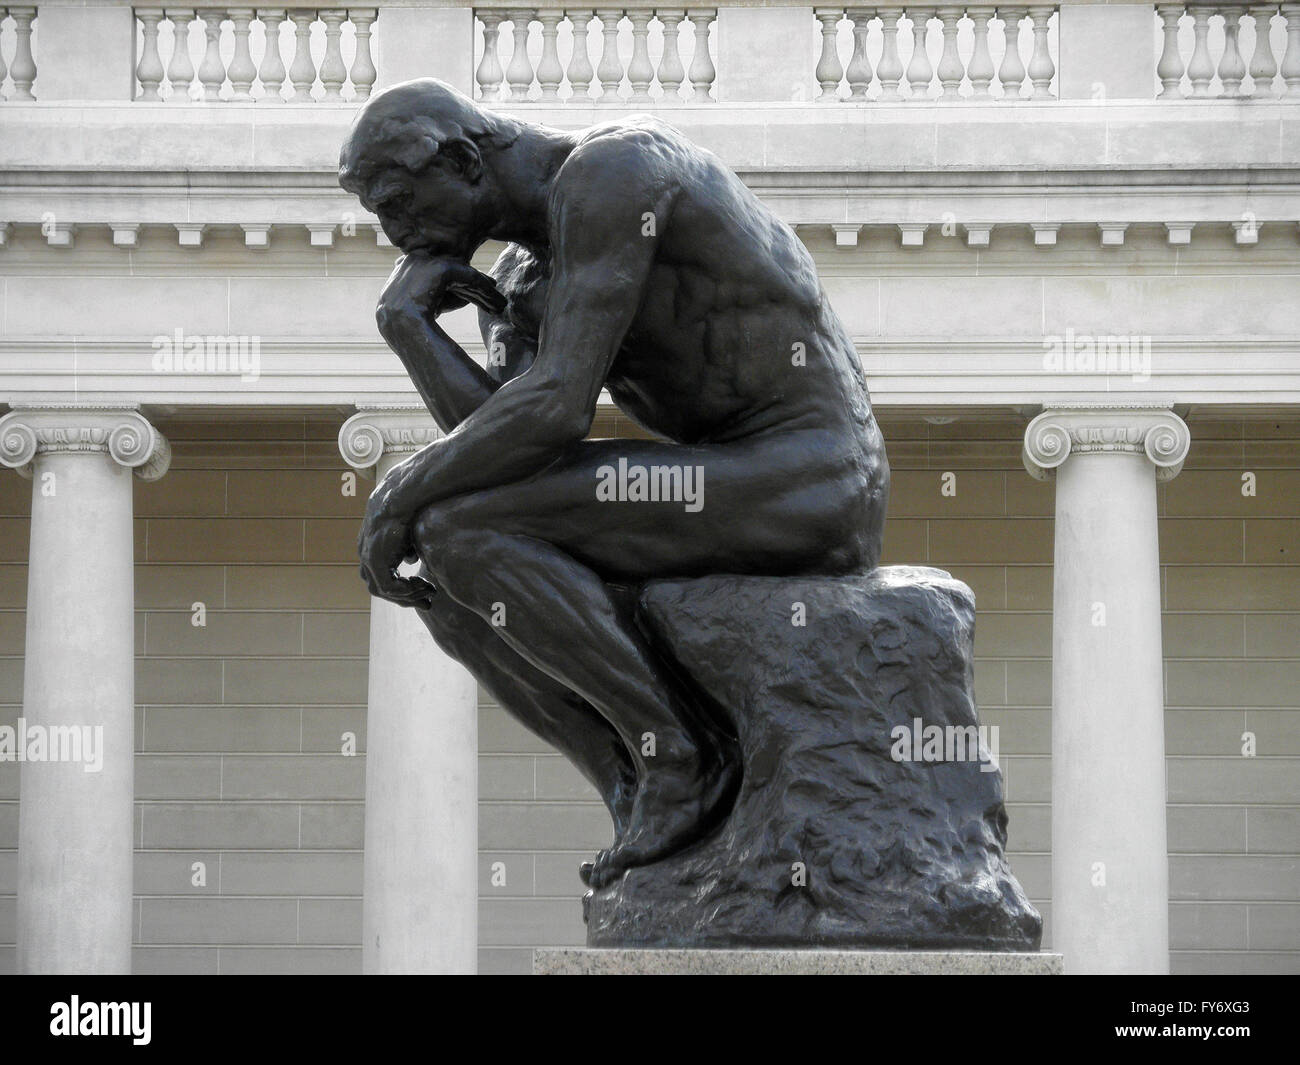 Side profile of the masterpiece the Thinker by Rodin - The Thinker at the entrance of the Palace of the Legion of - Stock Image